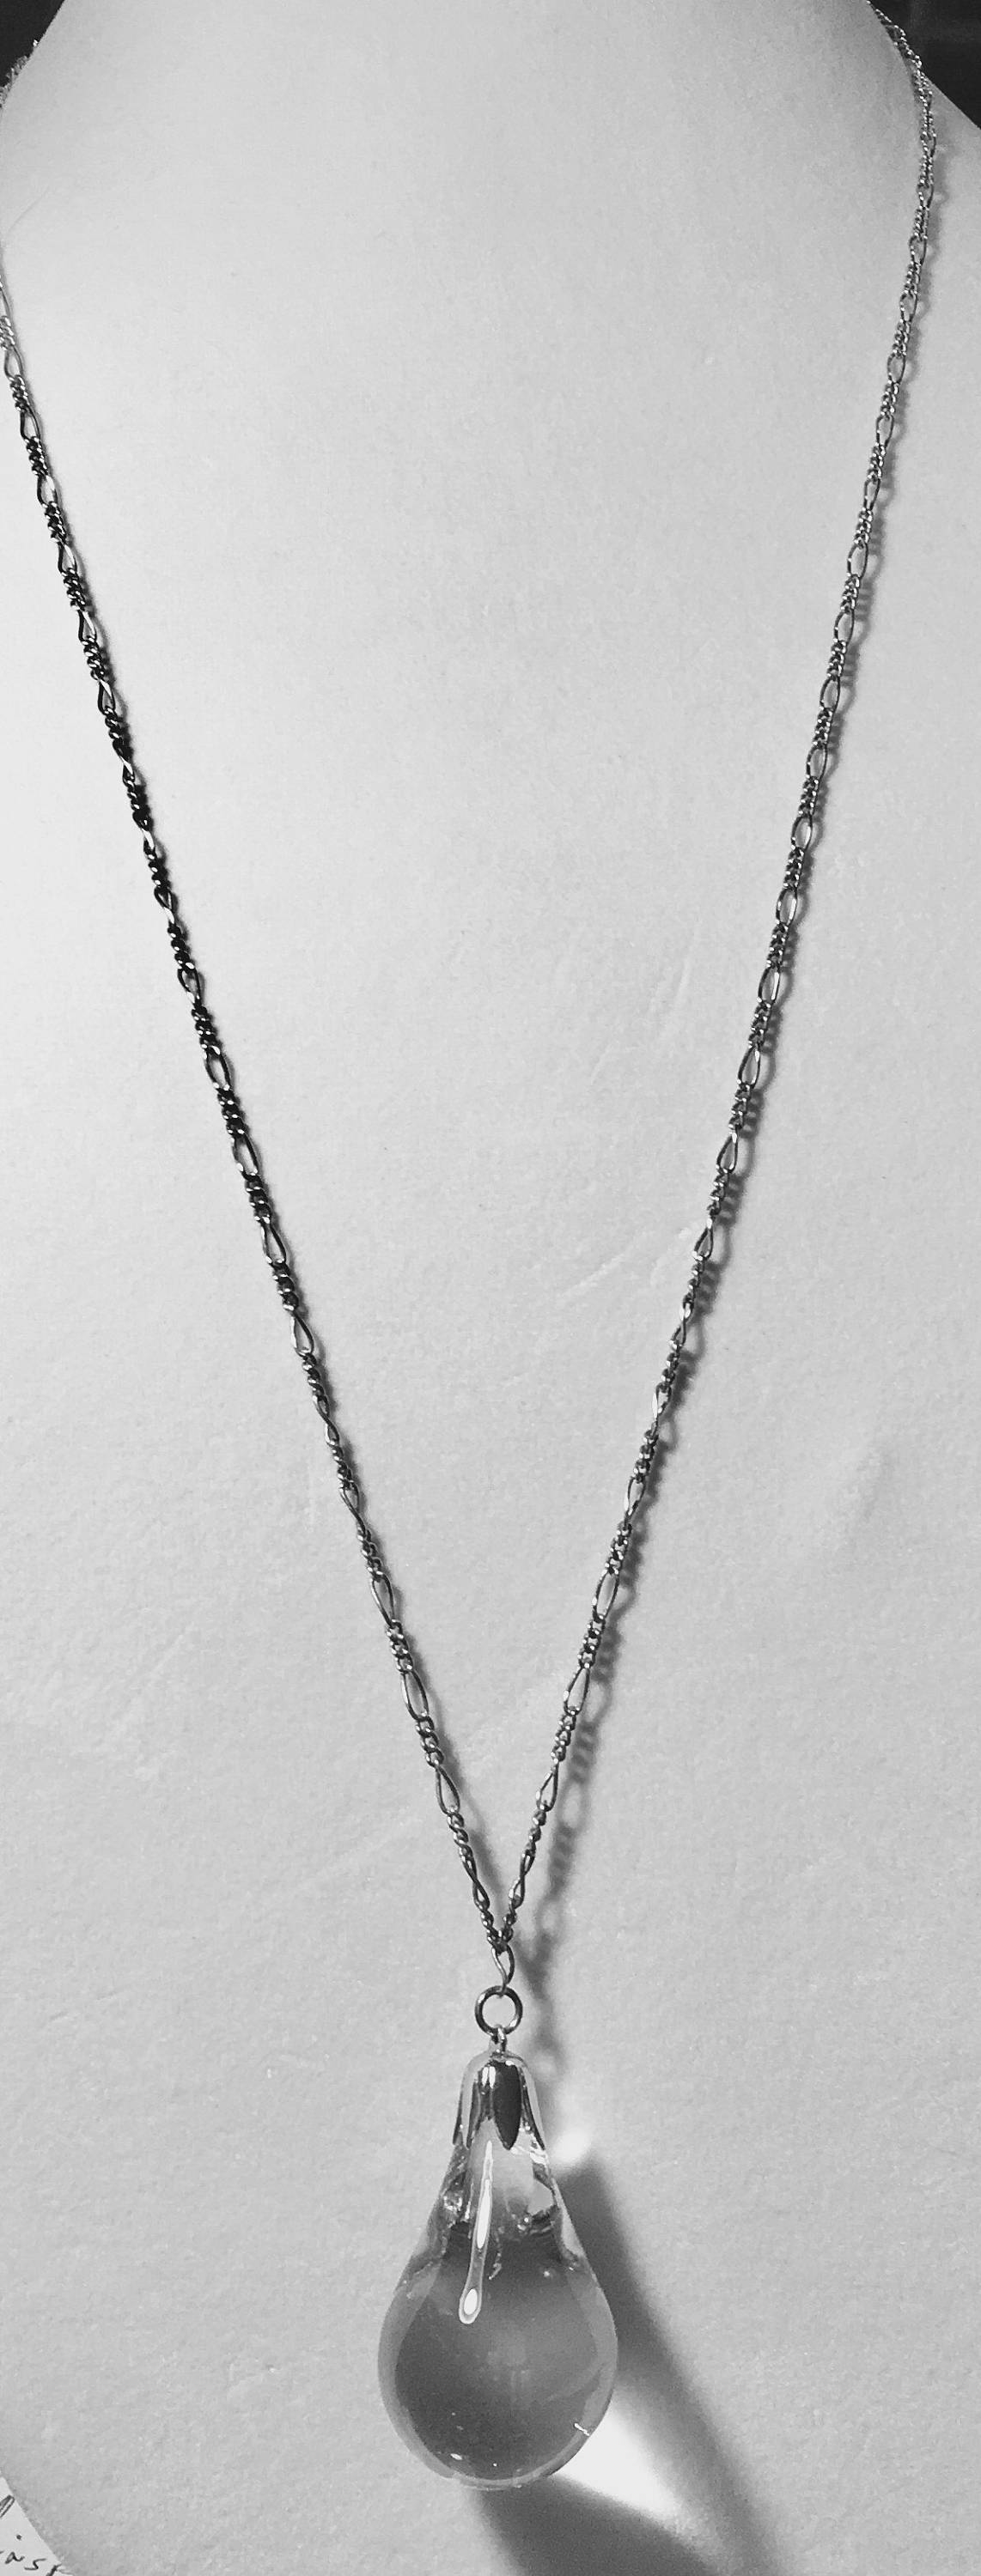 pin ball gold necklaces dainty pave crystal products necklace